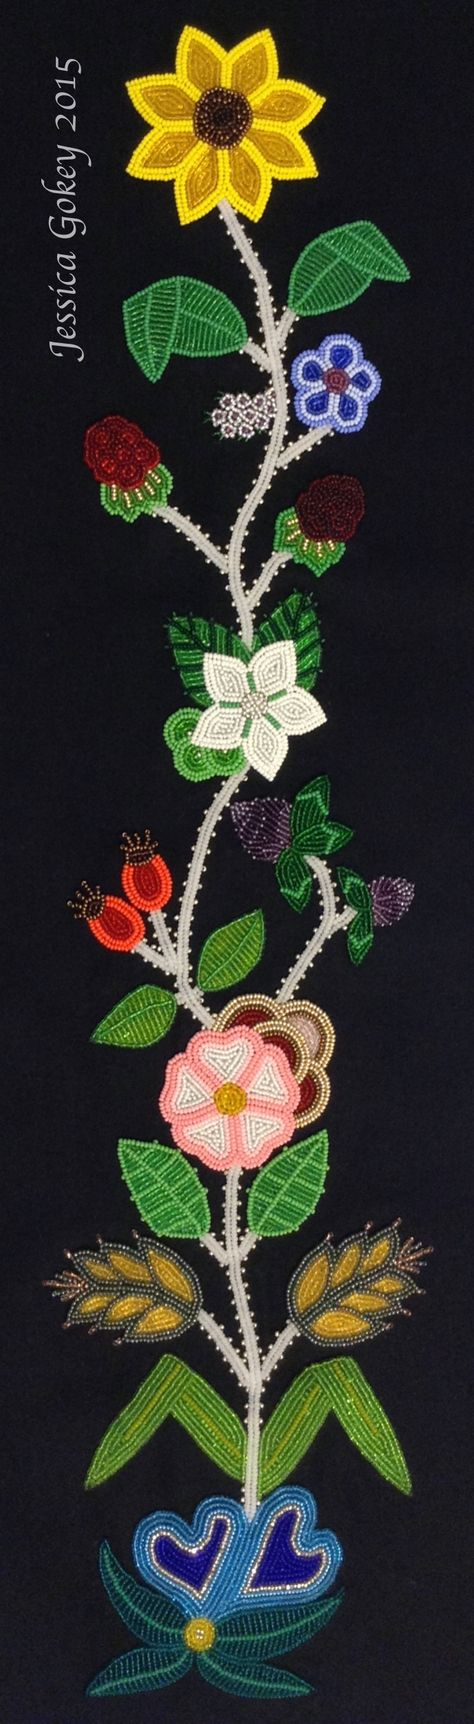 1st panel for MNHS piece, designed and beaded by Jessica Gokey 2015. Beaded on black wool broadcloth, measures 24 in by 5 in.